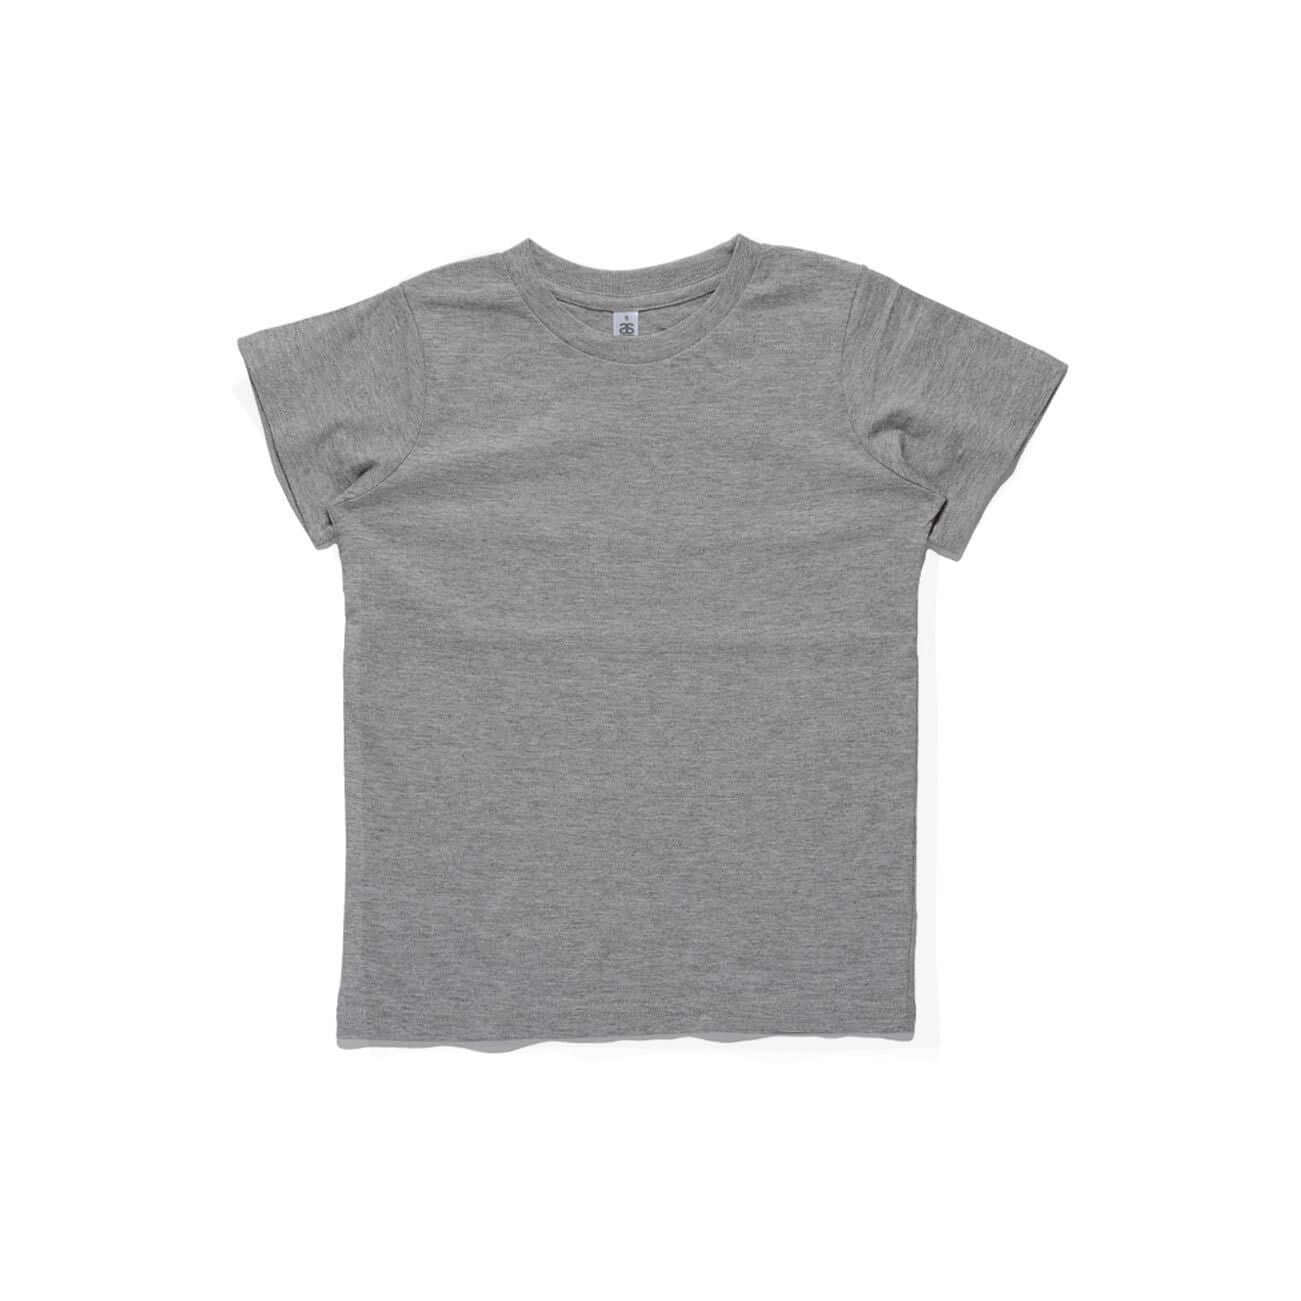 AS Colour Basic Kids Cotton Crew Neck Tee Shirt White, Navy, Coal and Grey Marl - Frankie's Story - 4